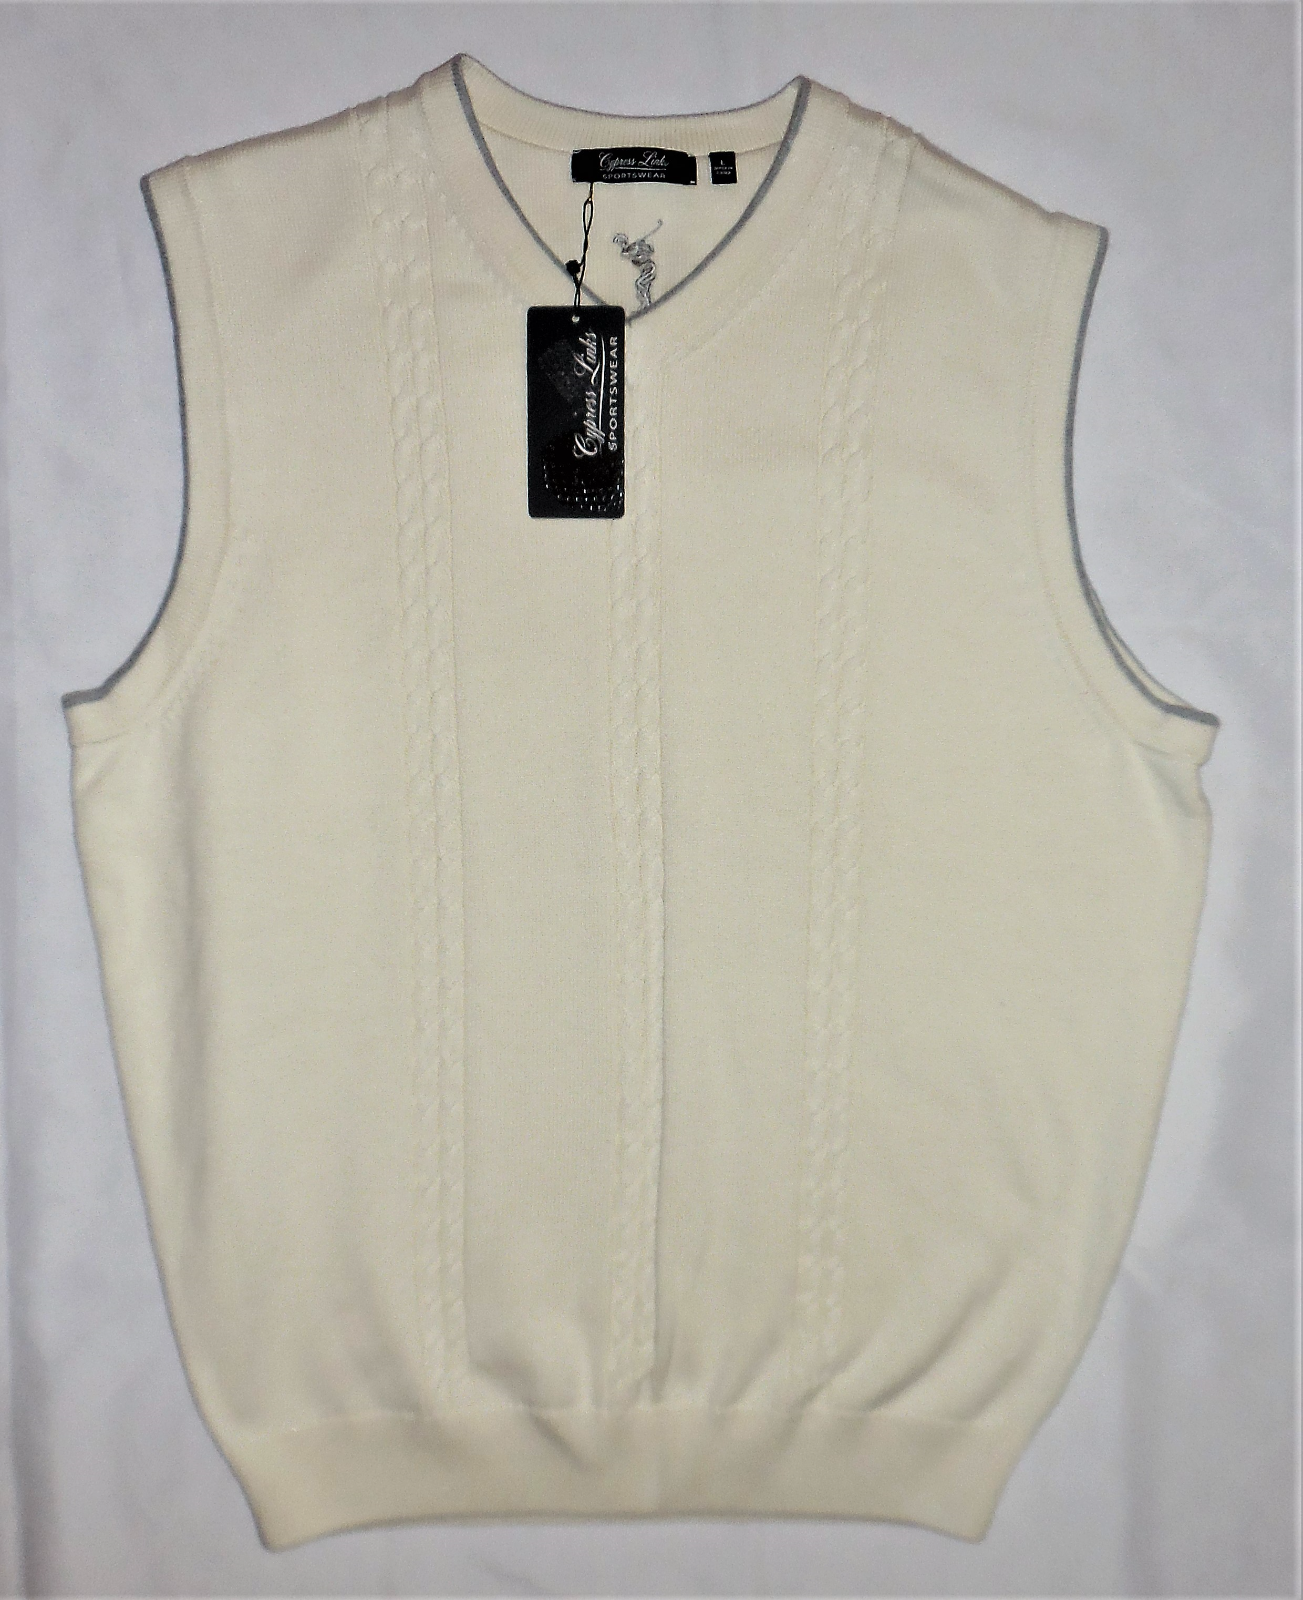 CYPRESS LINKS Cable Knit Cream Sweater Vest Large Golf Attire Sportswear LARGE image 5